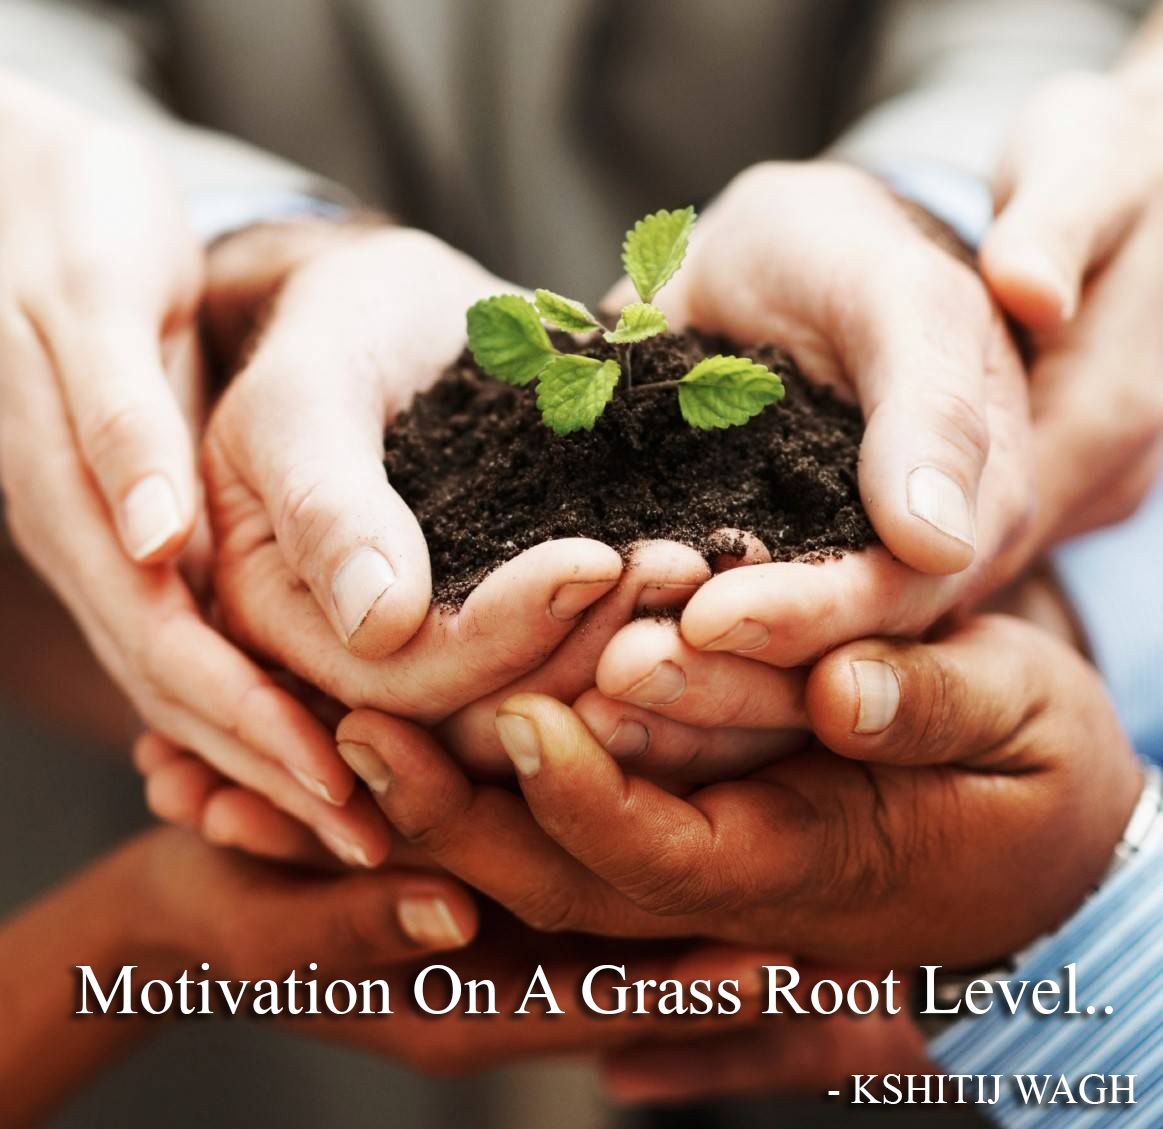 Motivation at a grass root level